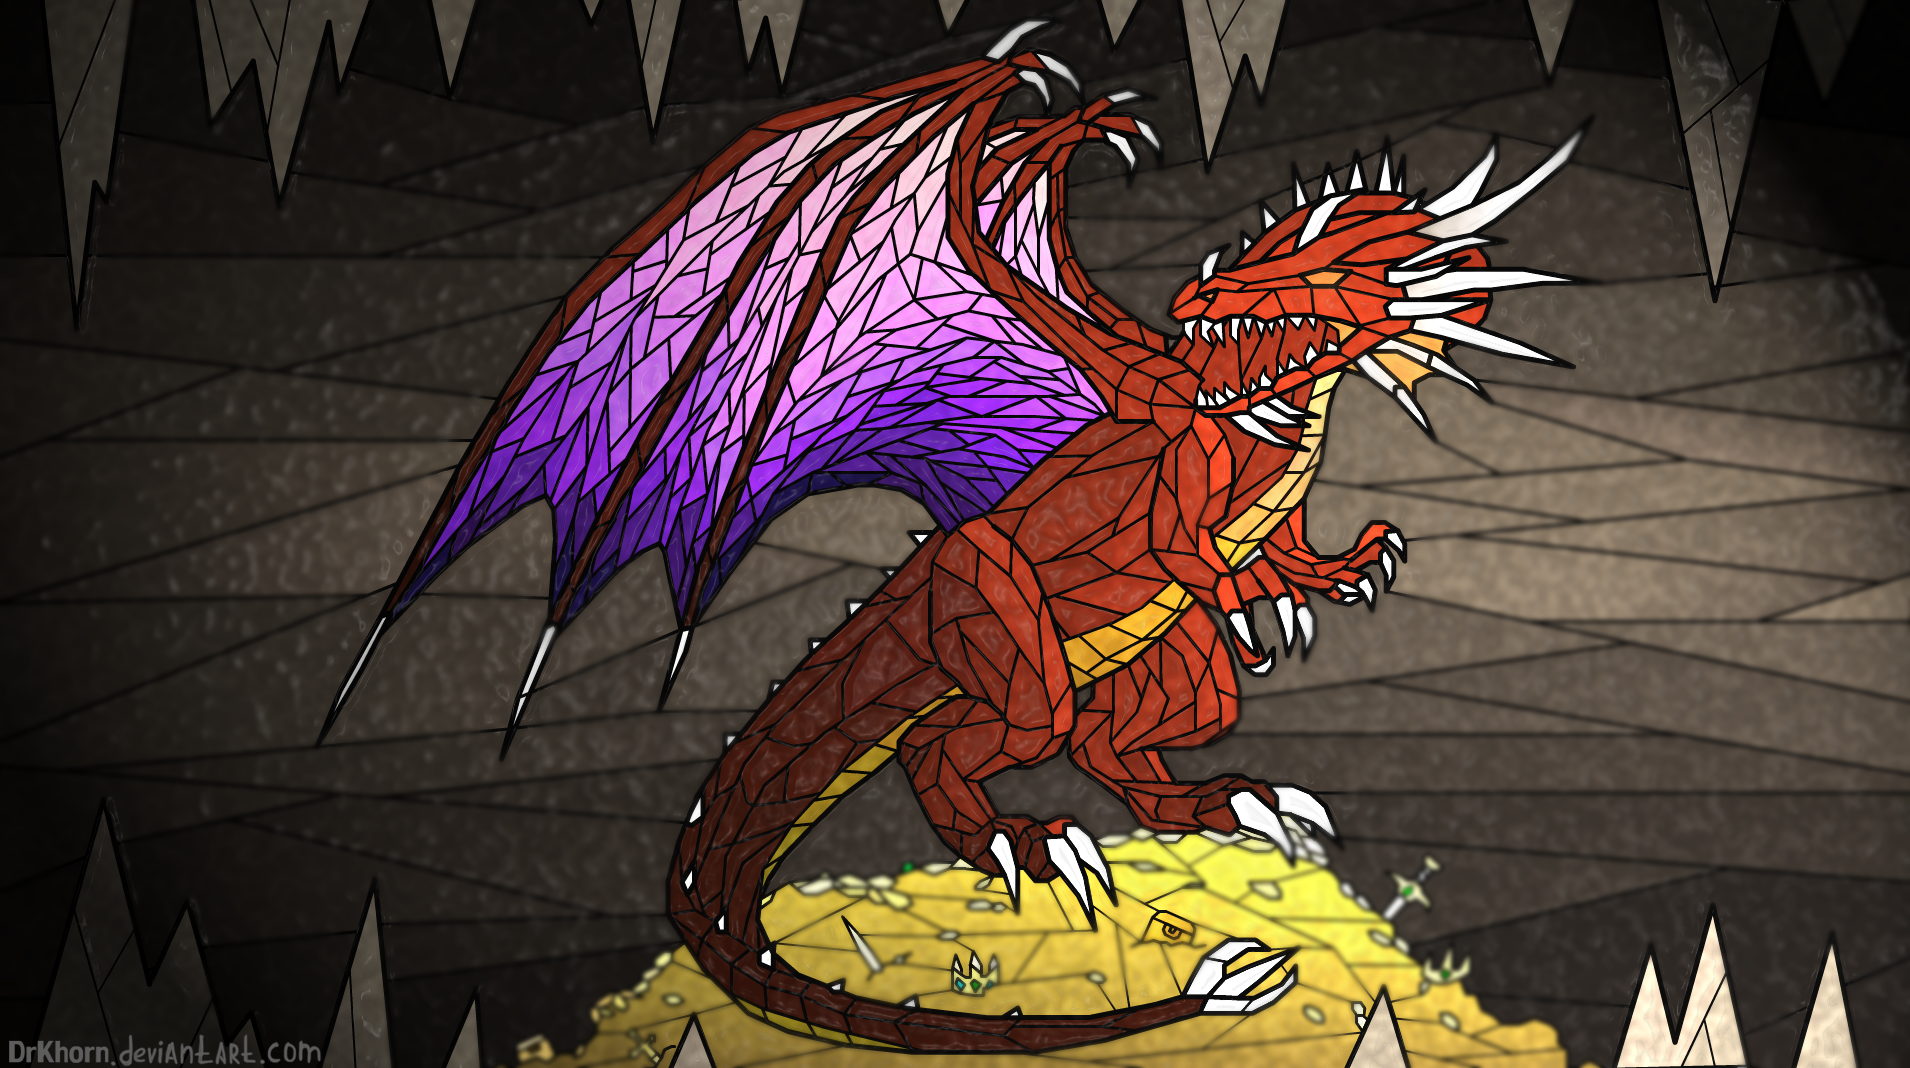 Red dragon by DrKhorn on DeviantArt